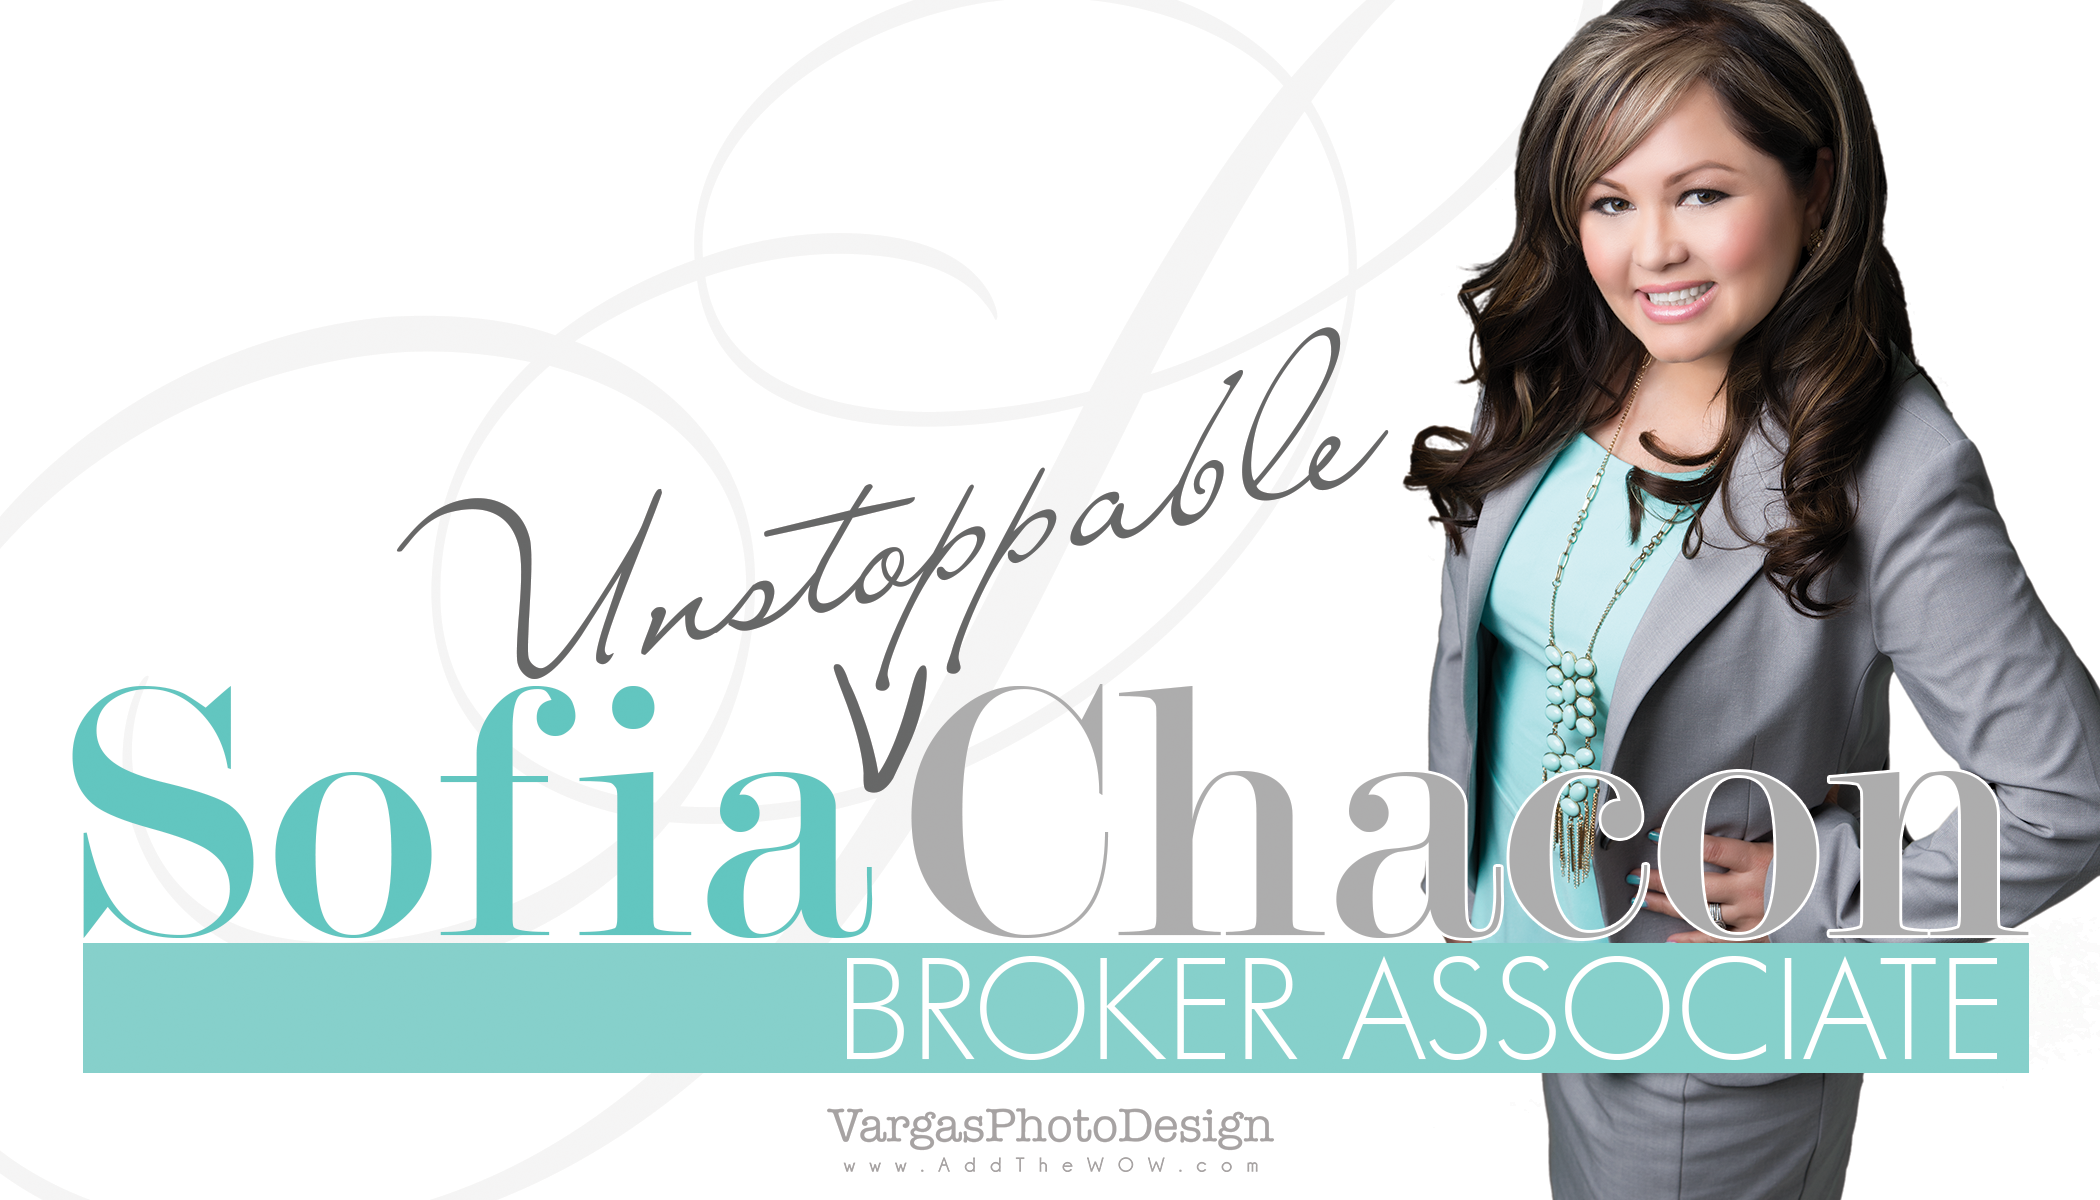 Sofia-Chacon-Realtor-Keller-Williams-Corona-Branding-Headshots.png